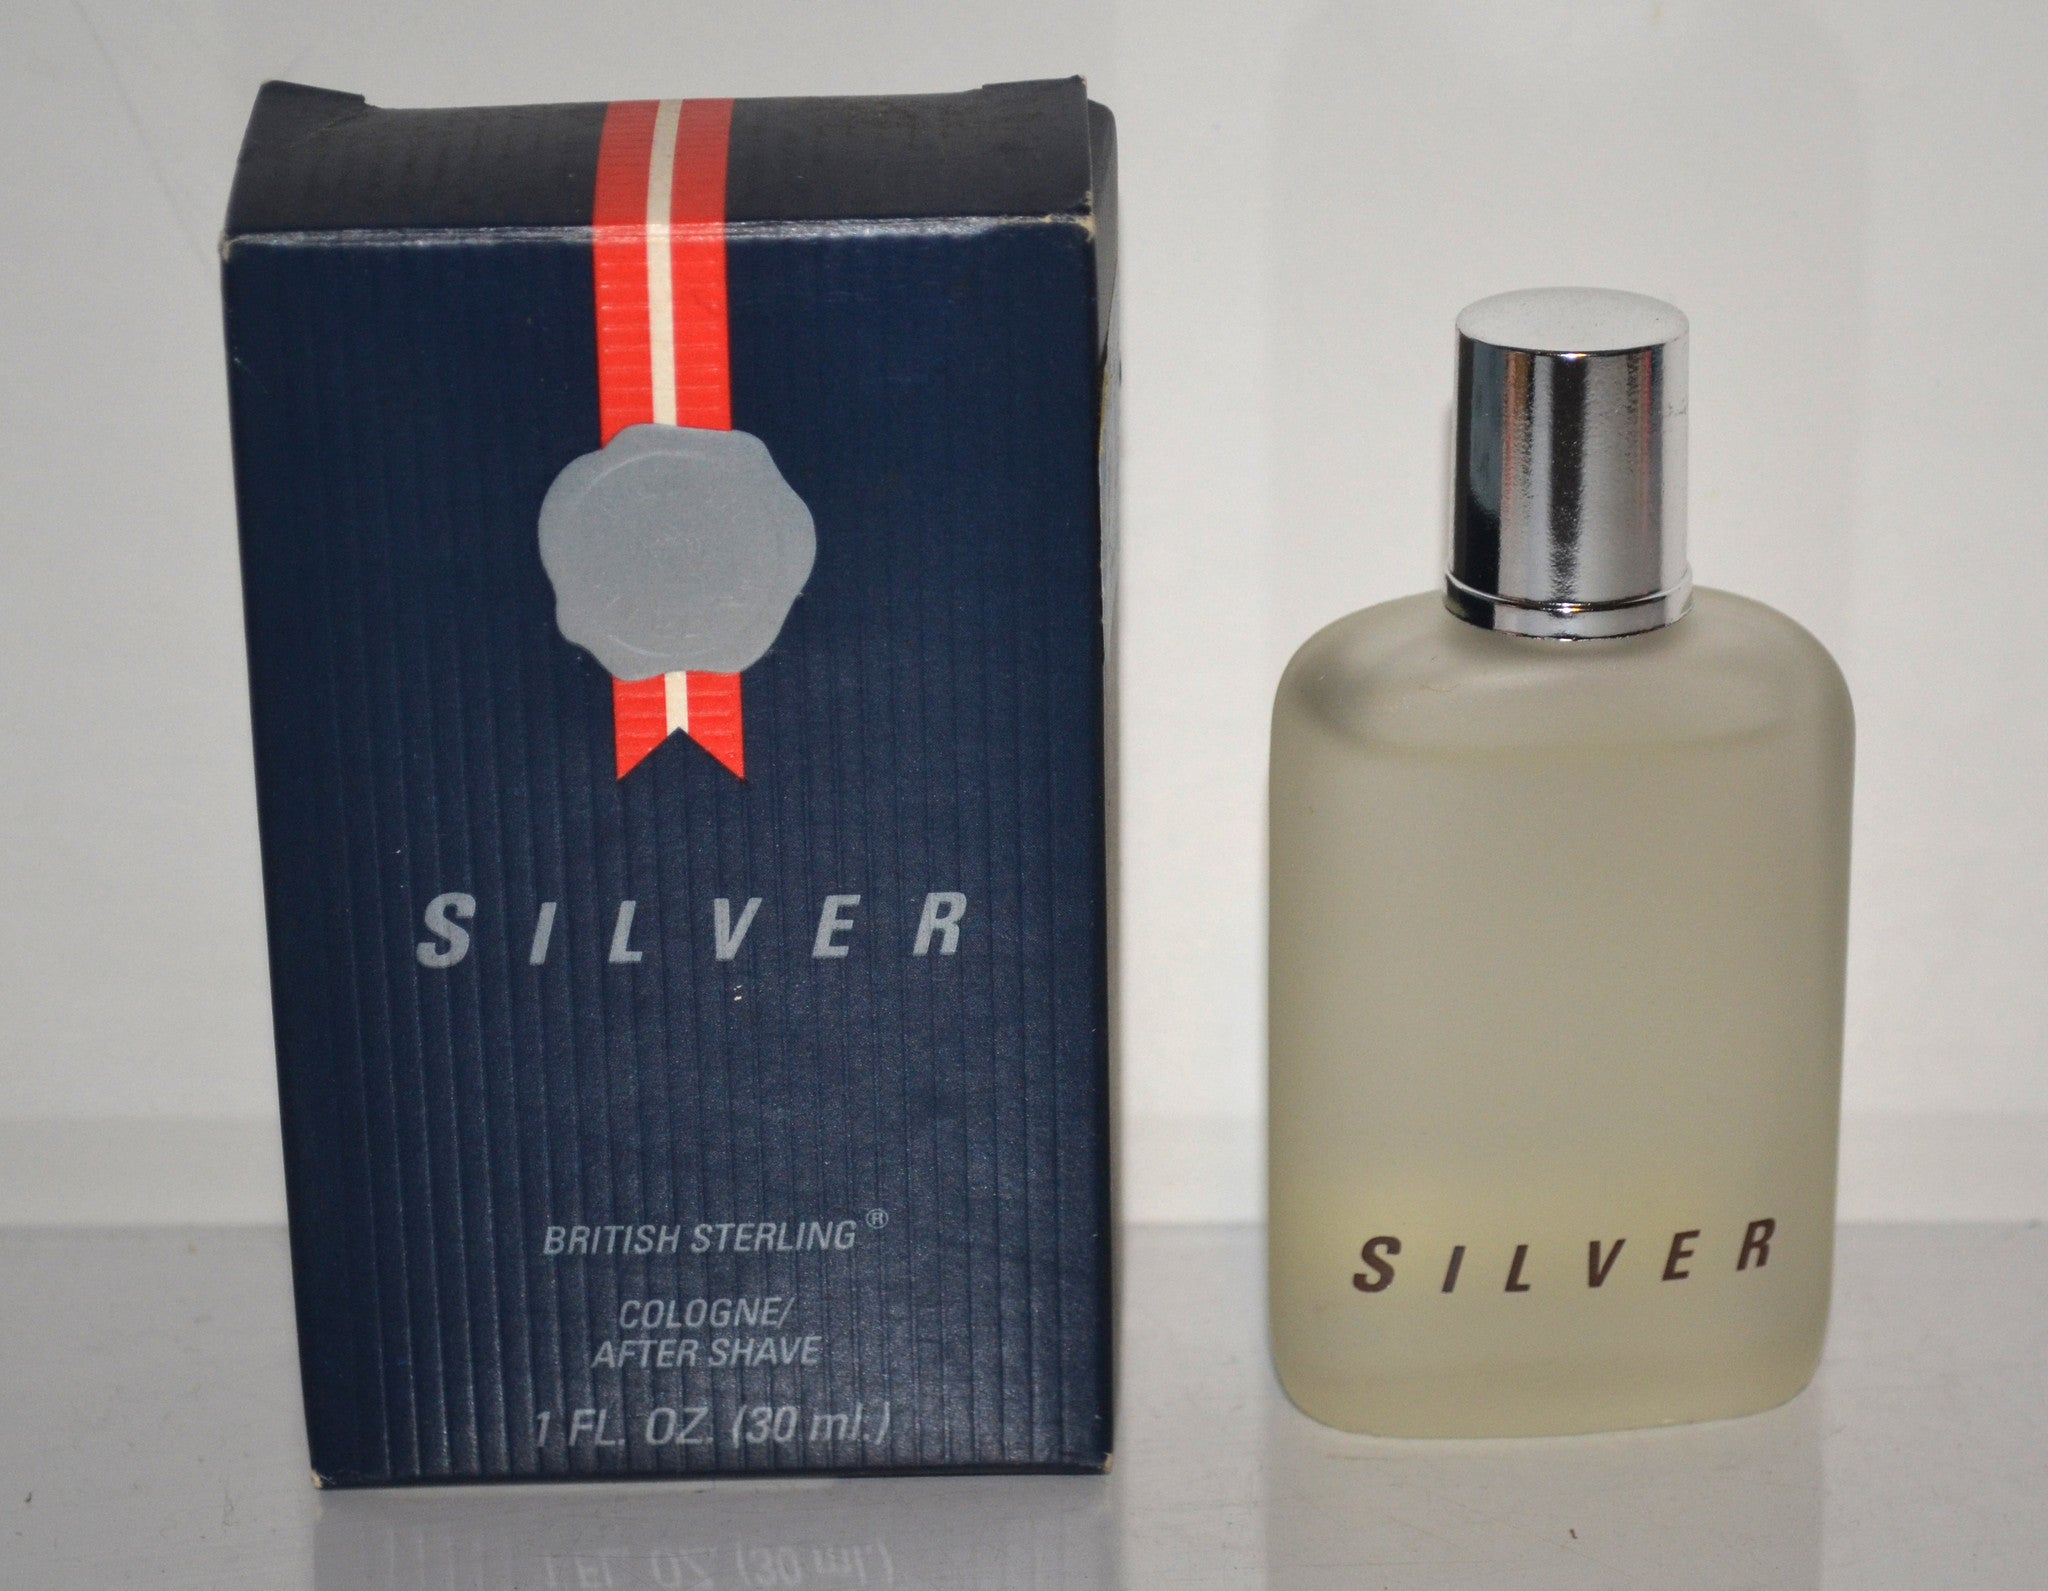 British Sterling Silver Cologne